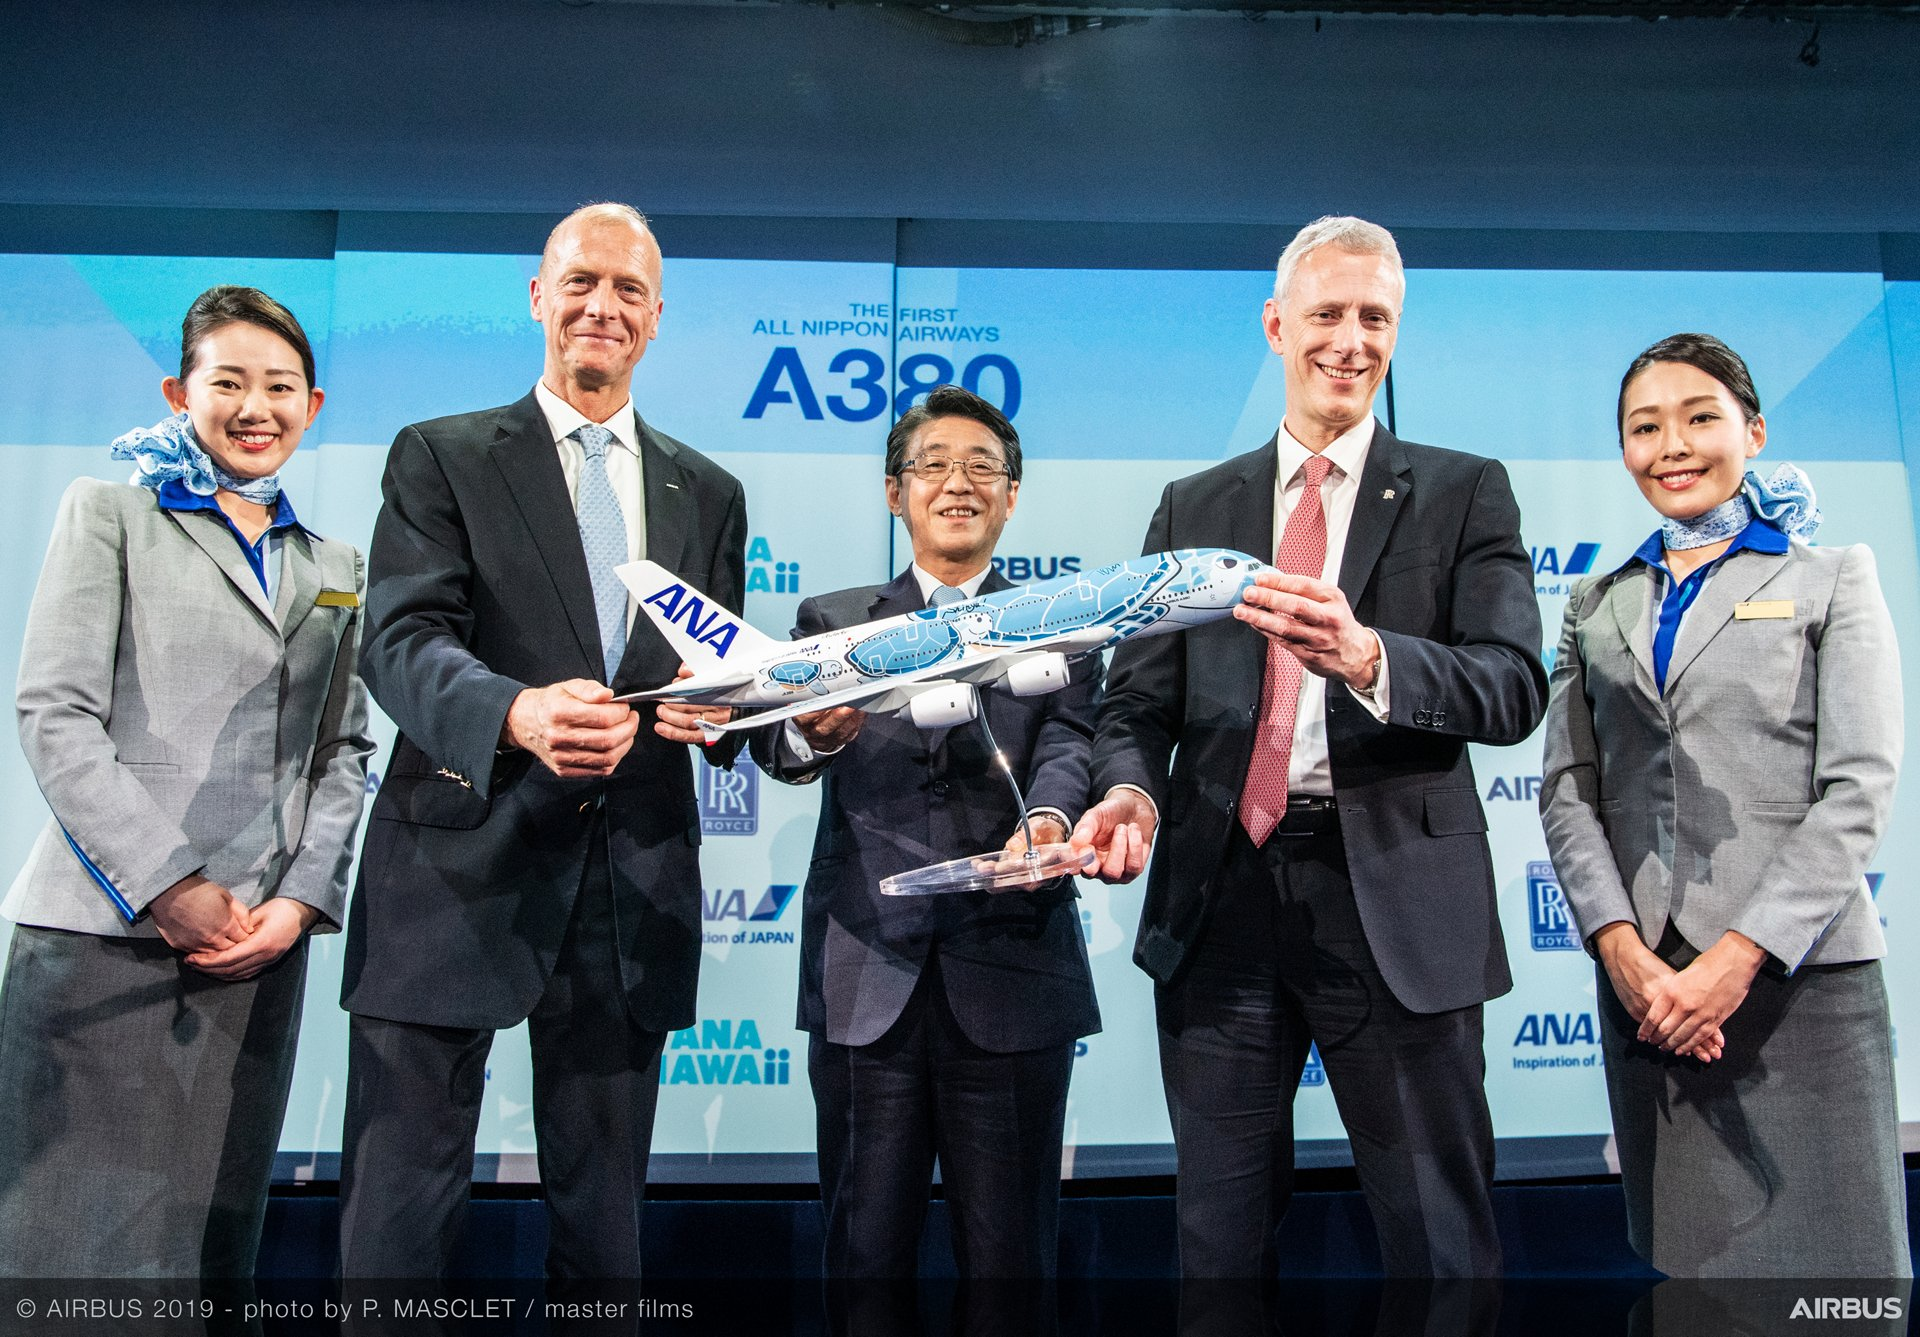 Present at the Airbus A380 delivery ceremony to All Nippon Airways – in addition to members of the airline's cabin crew – were (from left to right): Tom Enders, Airbus Chief Executive Officer; Shinya Katanozaka, President and CEO, ANA HOLDINGS INC.; Chris Cholerton, President, Rolls-Royce for Civil Aerospace